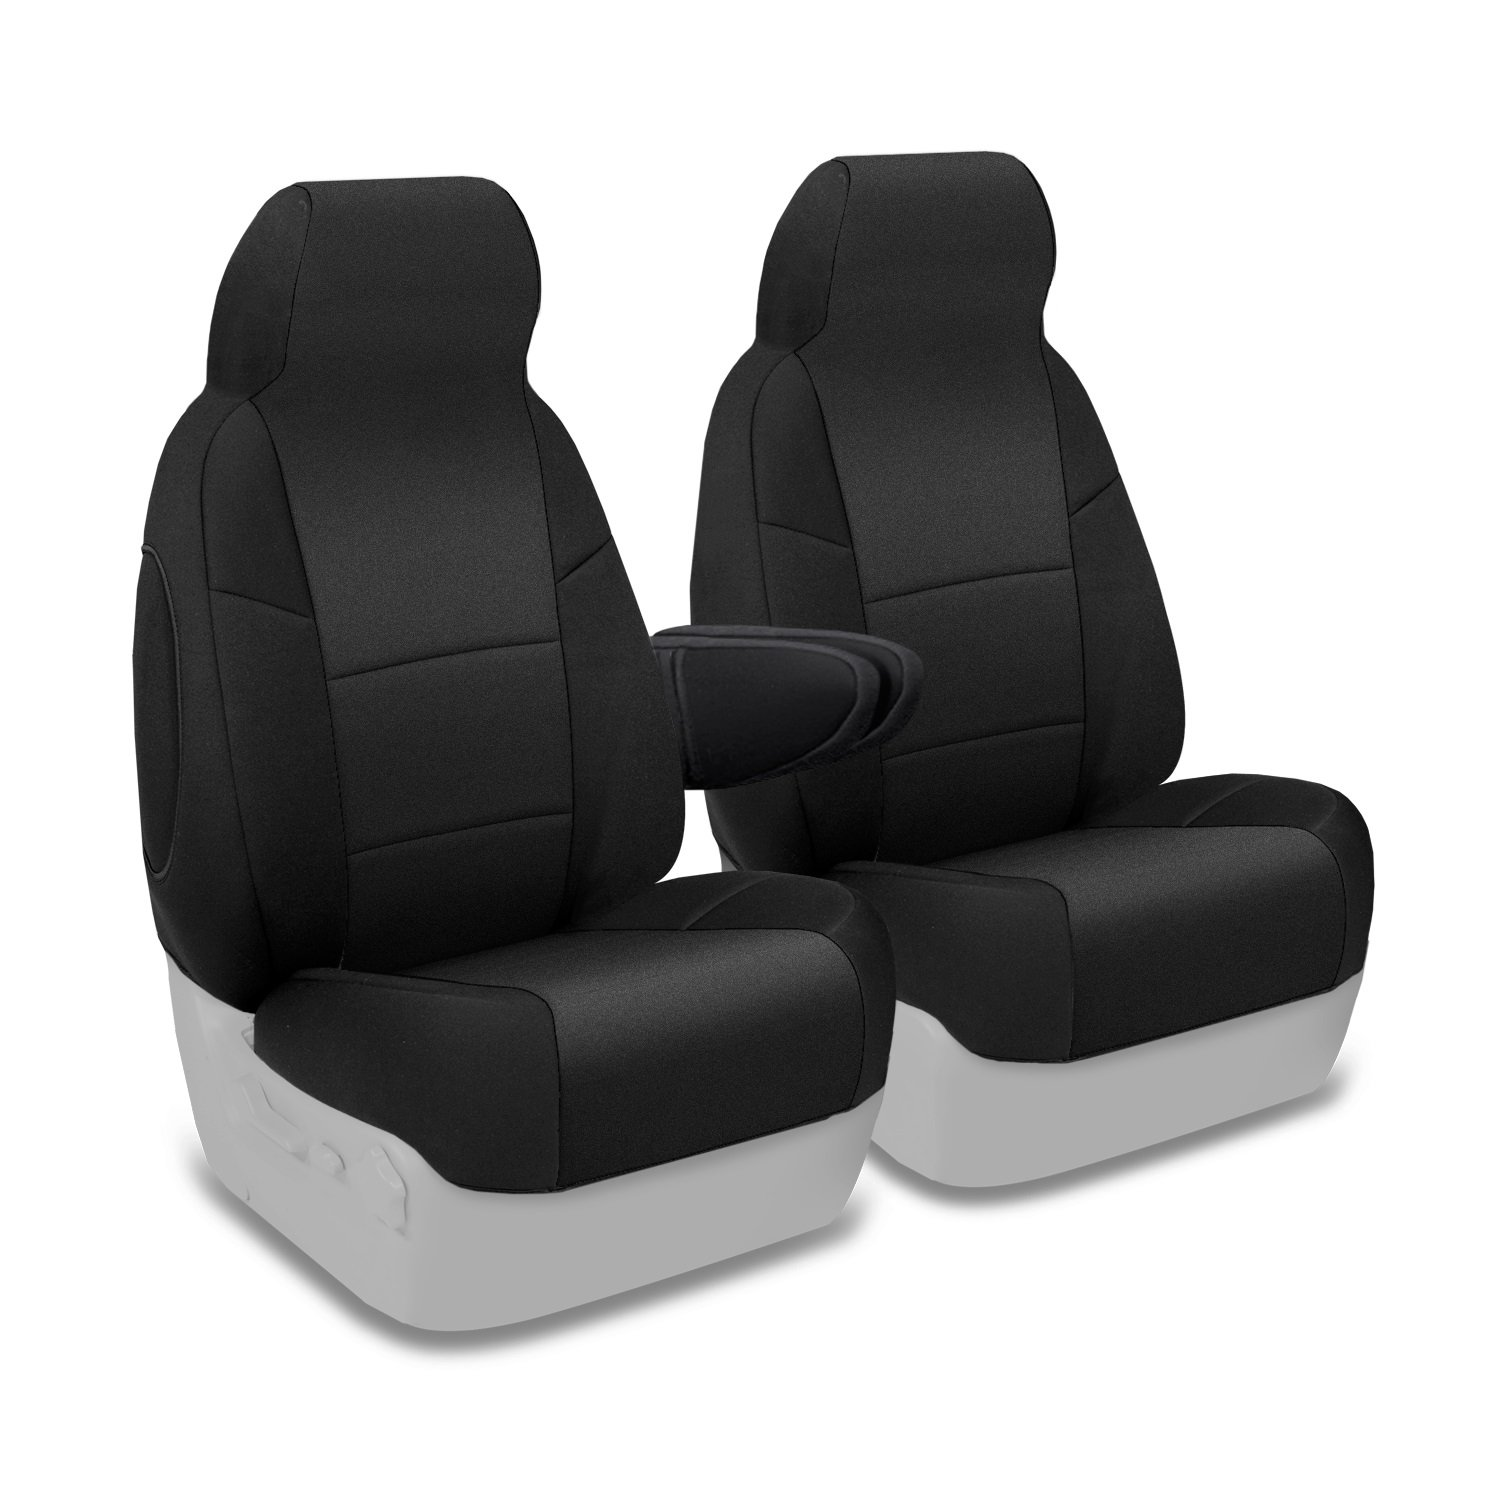 Coverking Custom Fit Front 50/50 Bucket Seat Cover for Select Chevrolet Models - Neosupreme Solid (Black) by Coverking